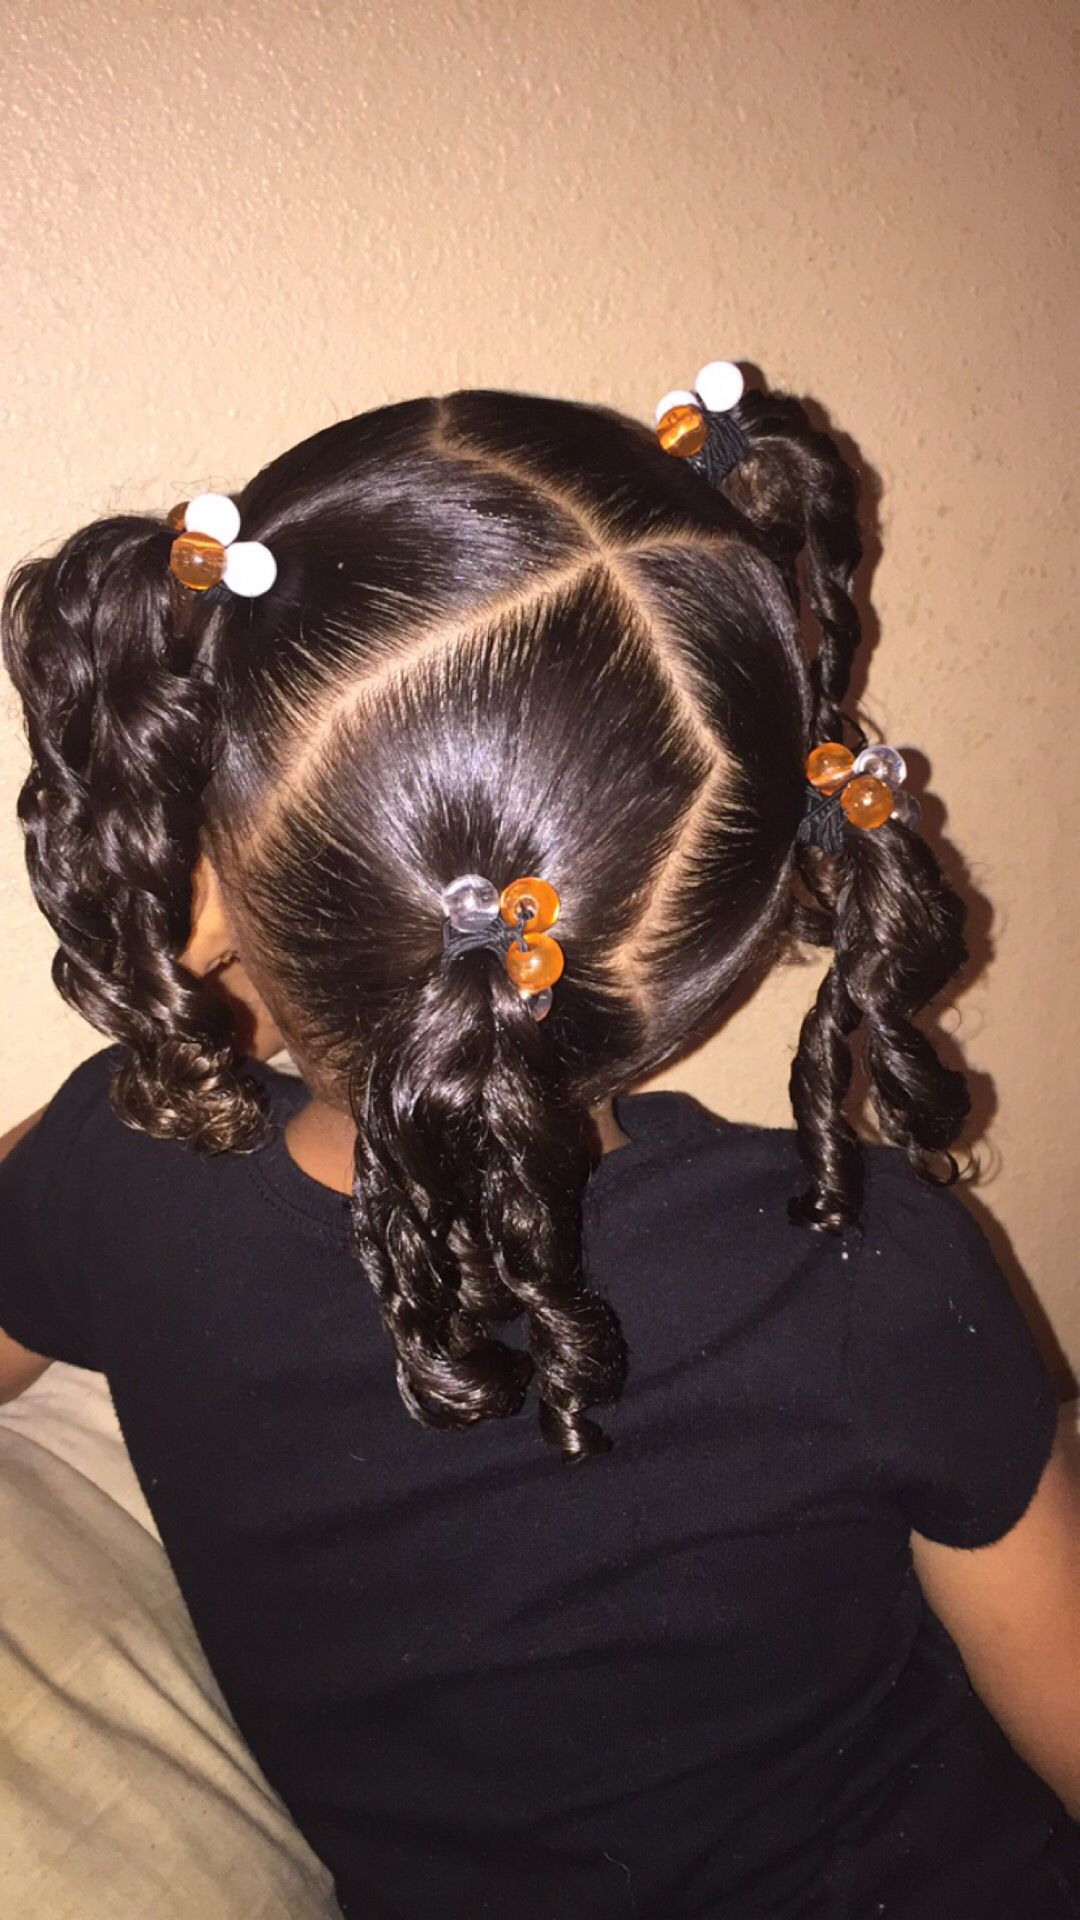 biracial hair | biracial hair care | pinterest | biracial hair